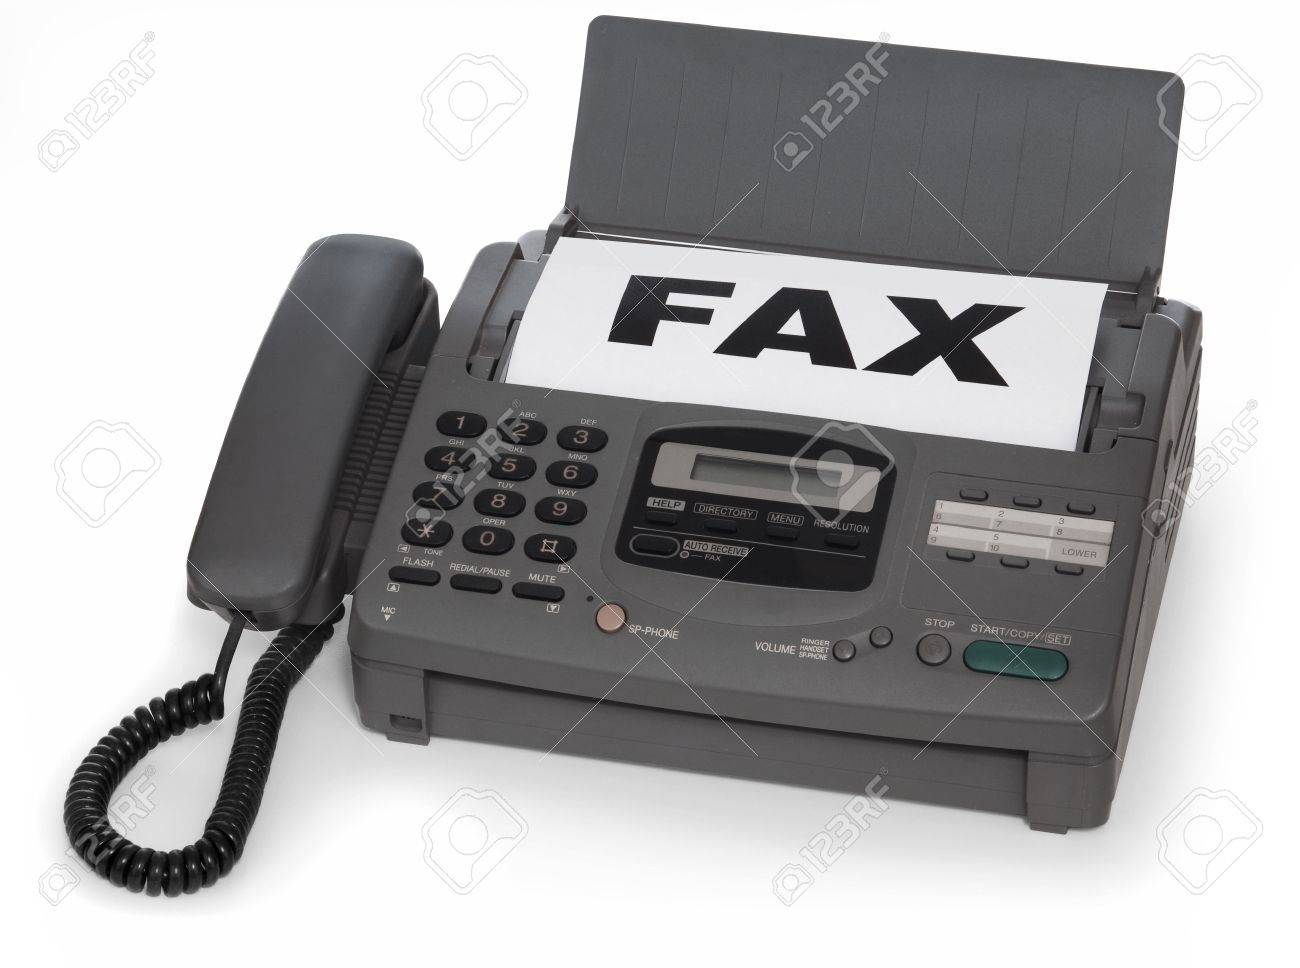 fax machine isolated on white background stock photo picture and